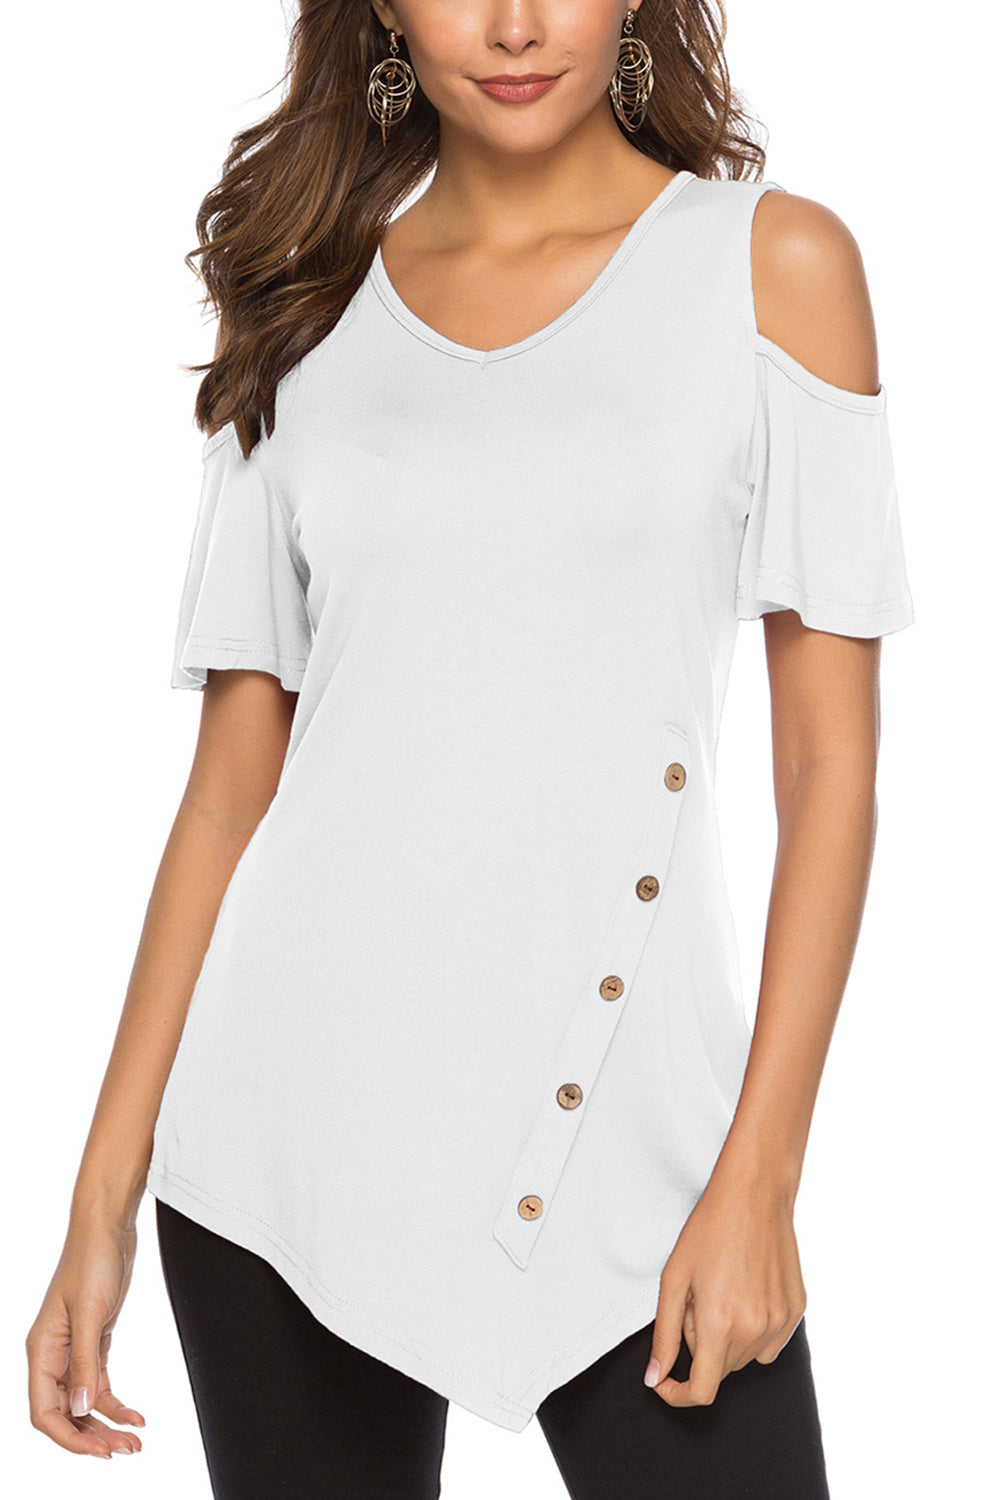 Round Neck Cold Shoulder Blouse - Alycia Mikay Fashion